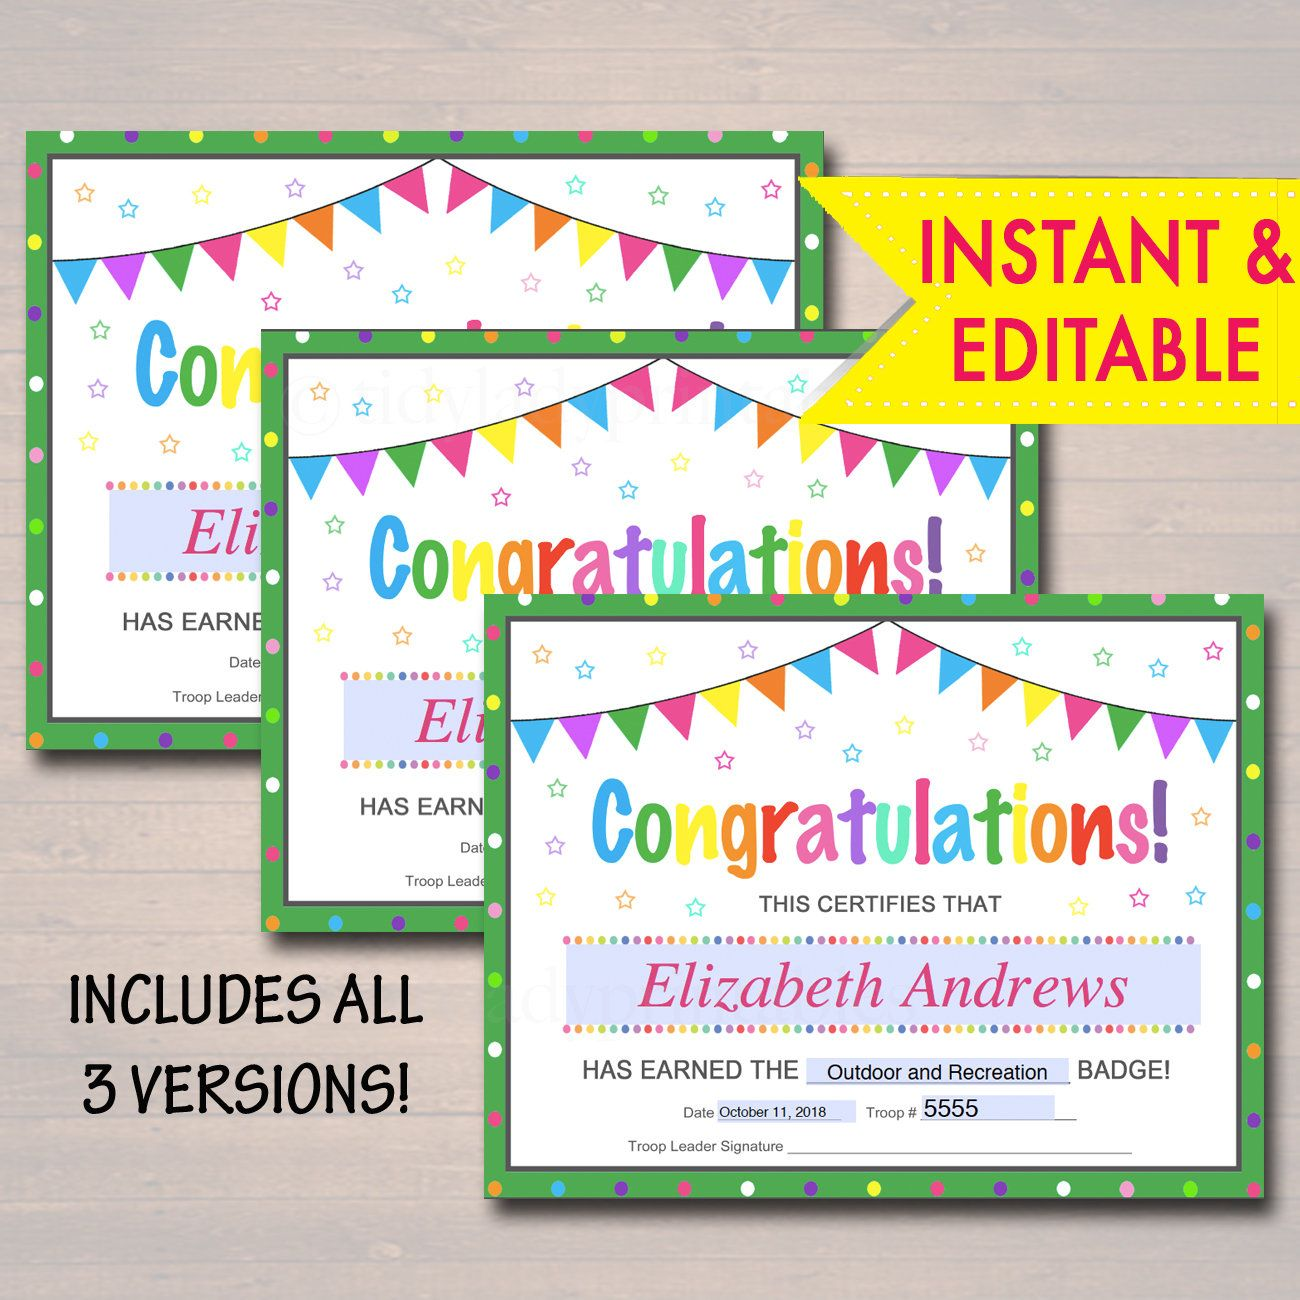 Editable Certificates Badge Patch And Award Certificate Etsy Editable Certificates Awards Certificates Template Troop Leader Cub scout award certificate template